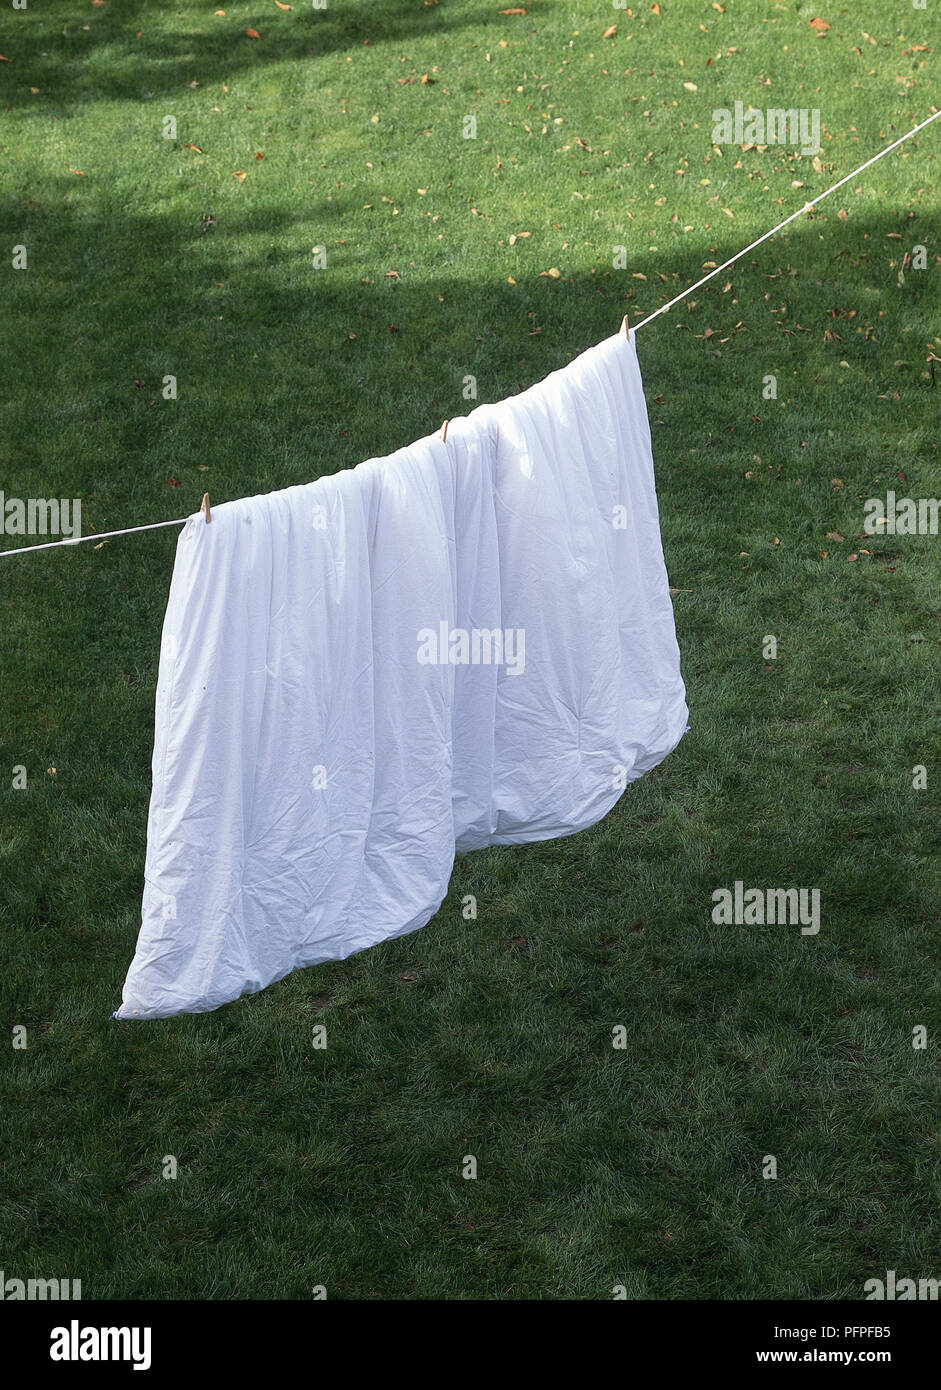 Duvet hanging out to air on washing line above garden lawn. - Stock Image